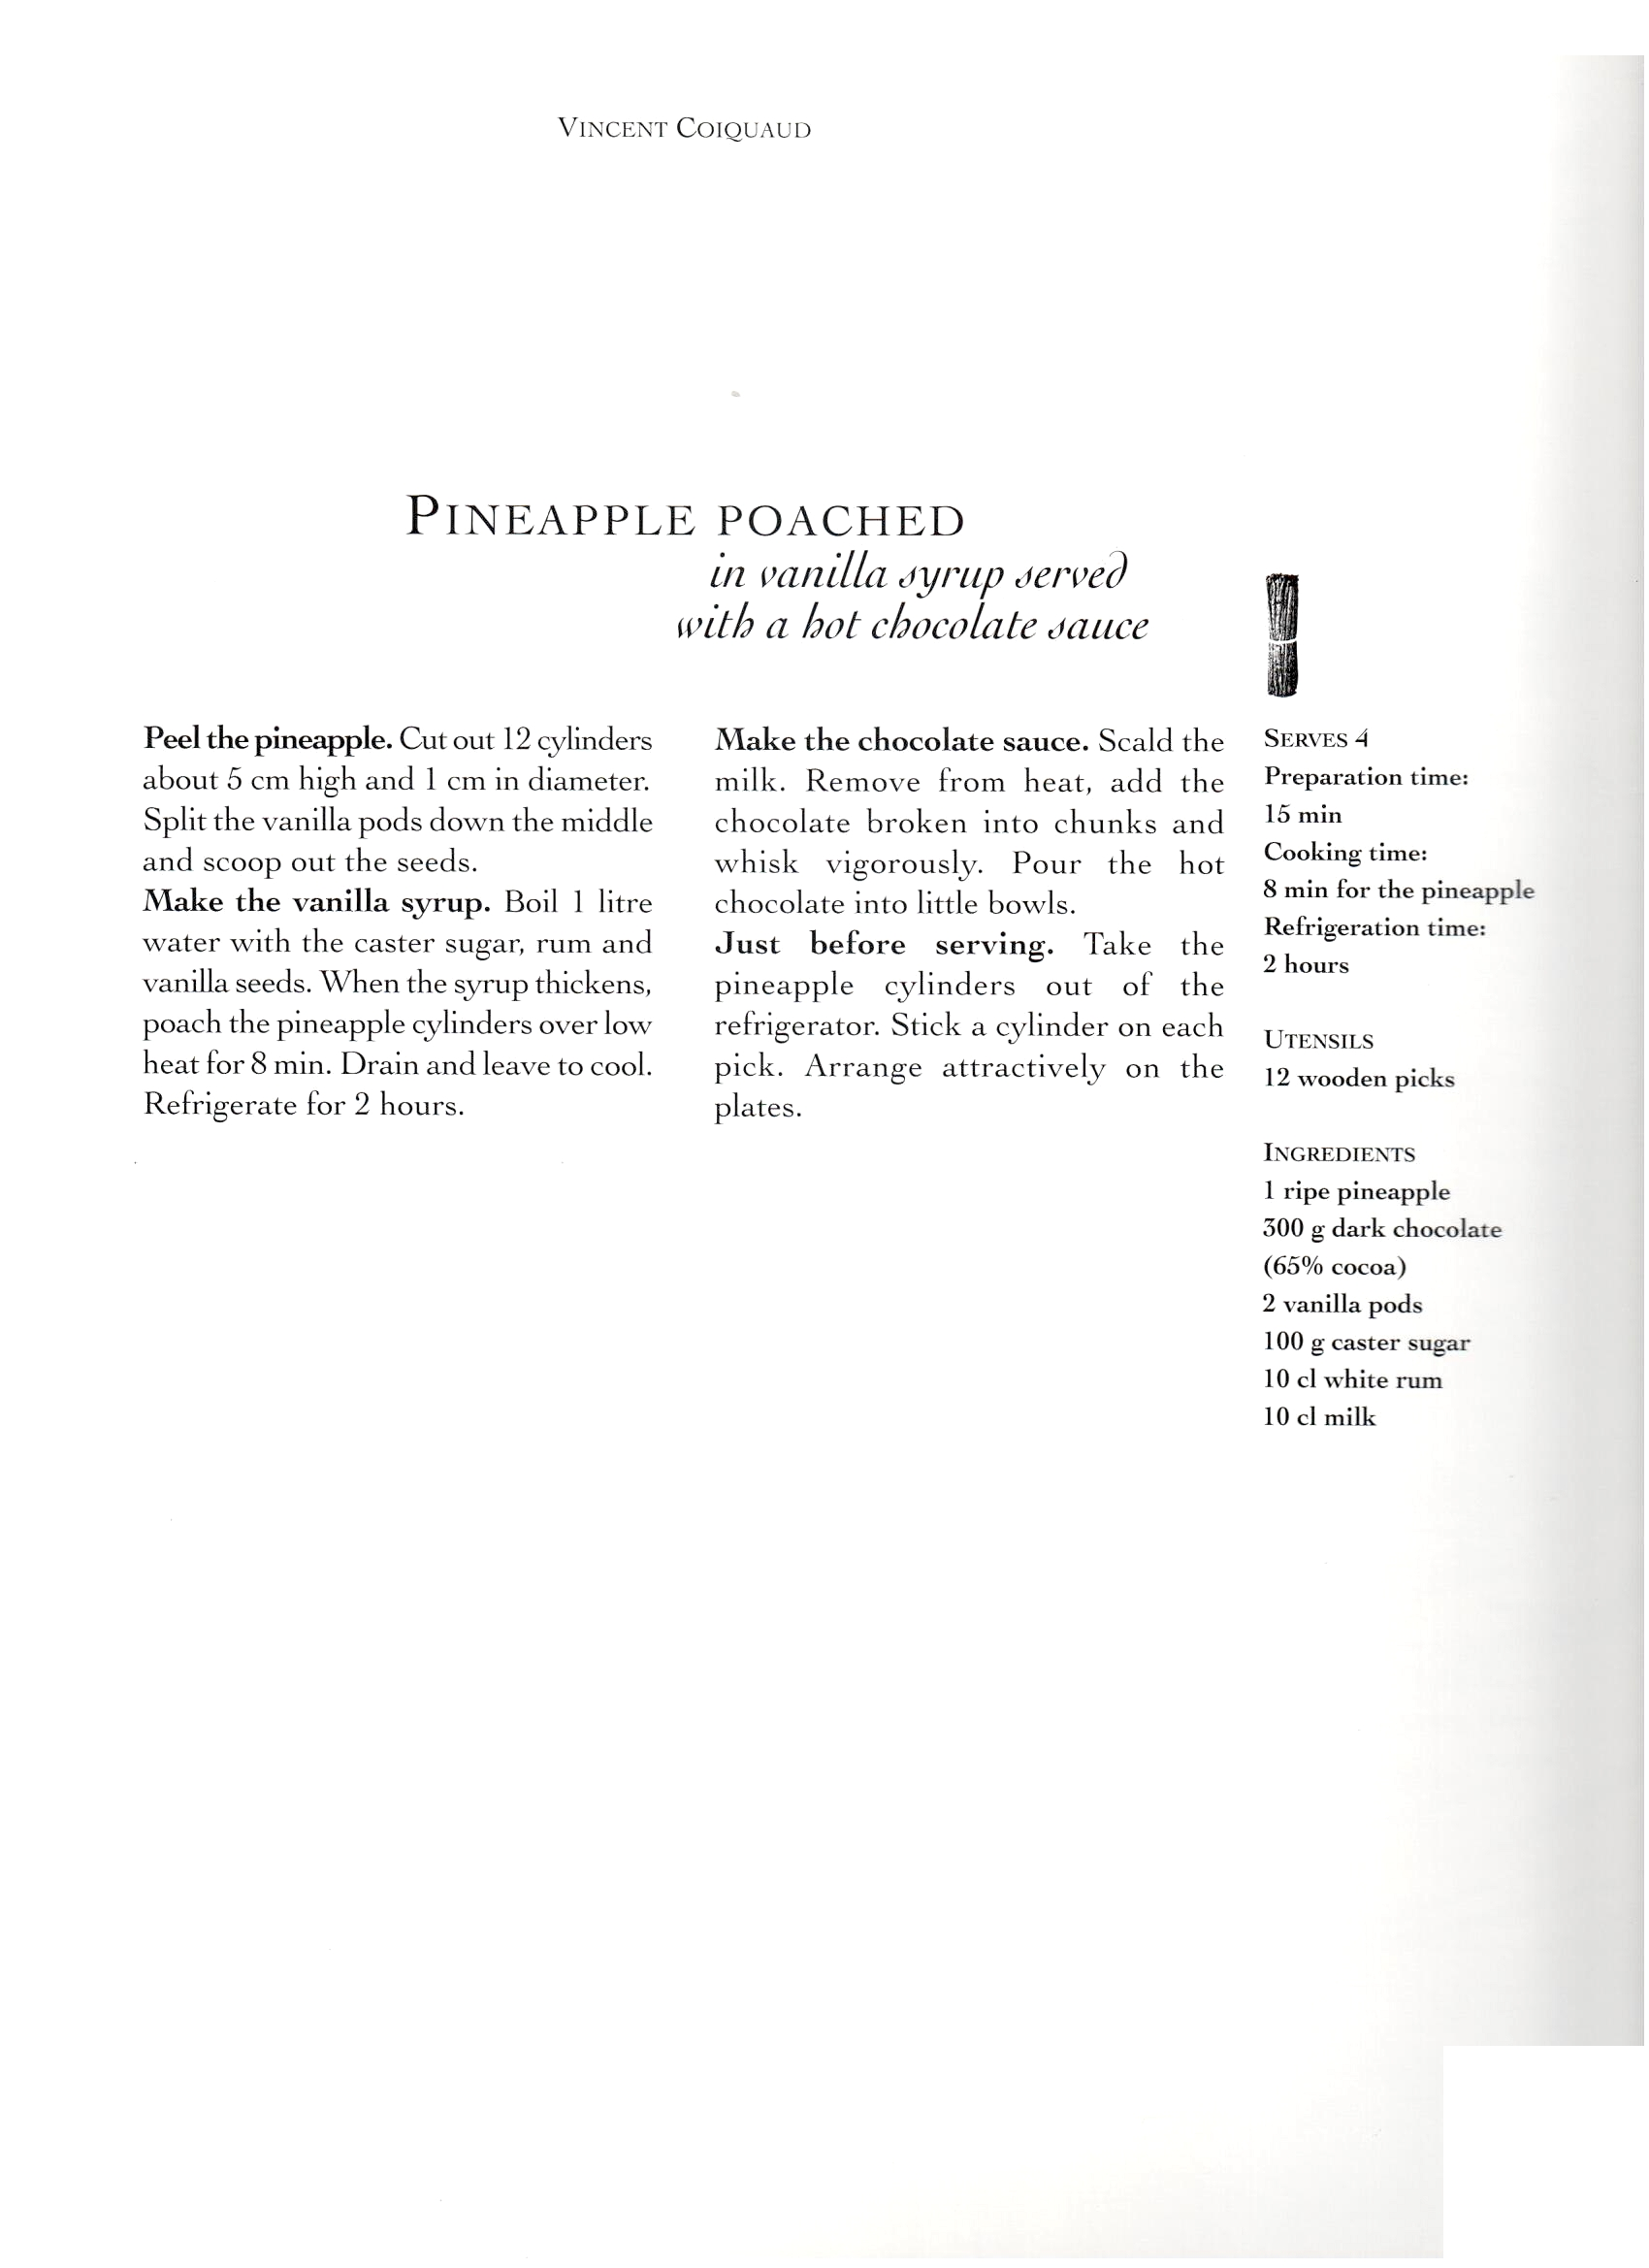 49-pineapple-poached.jpg